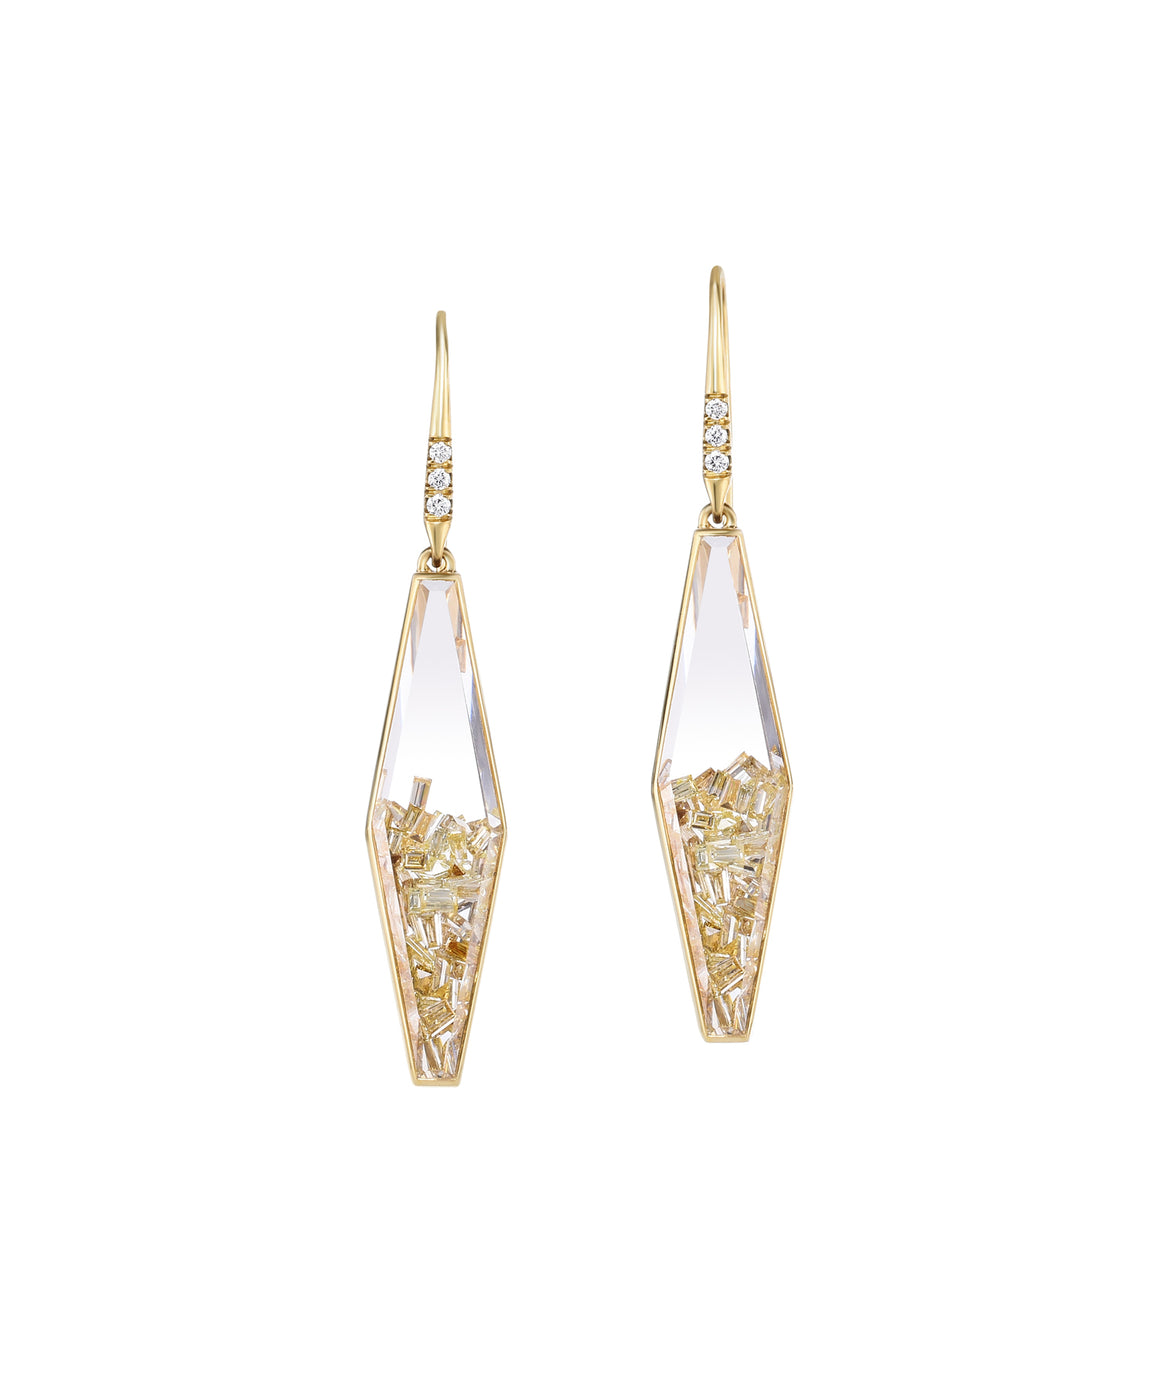 Diamond Shaped Shaker Earrings - Lesley Ann Jewels